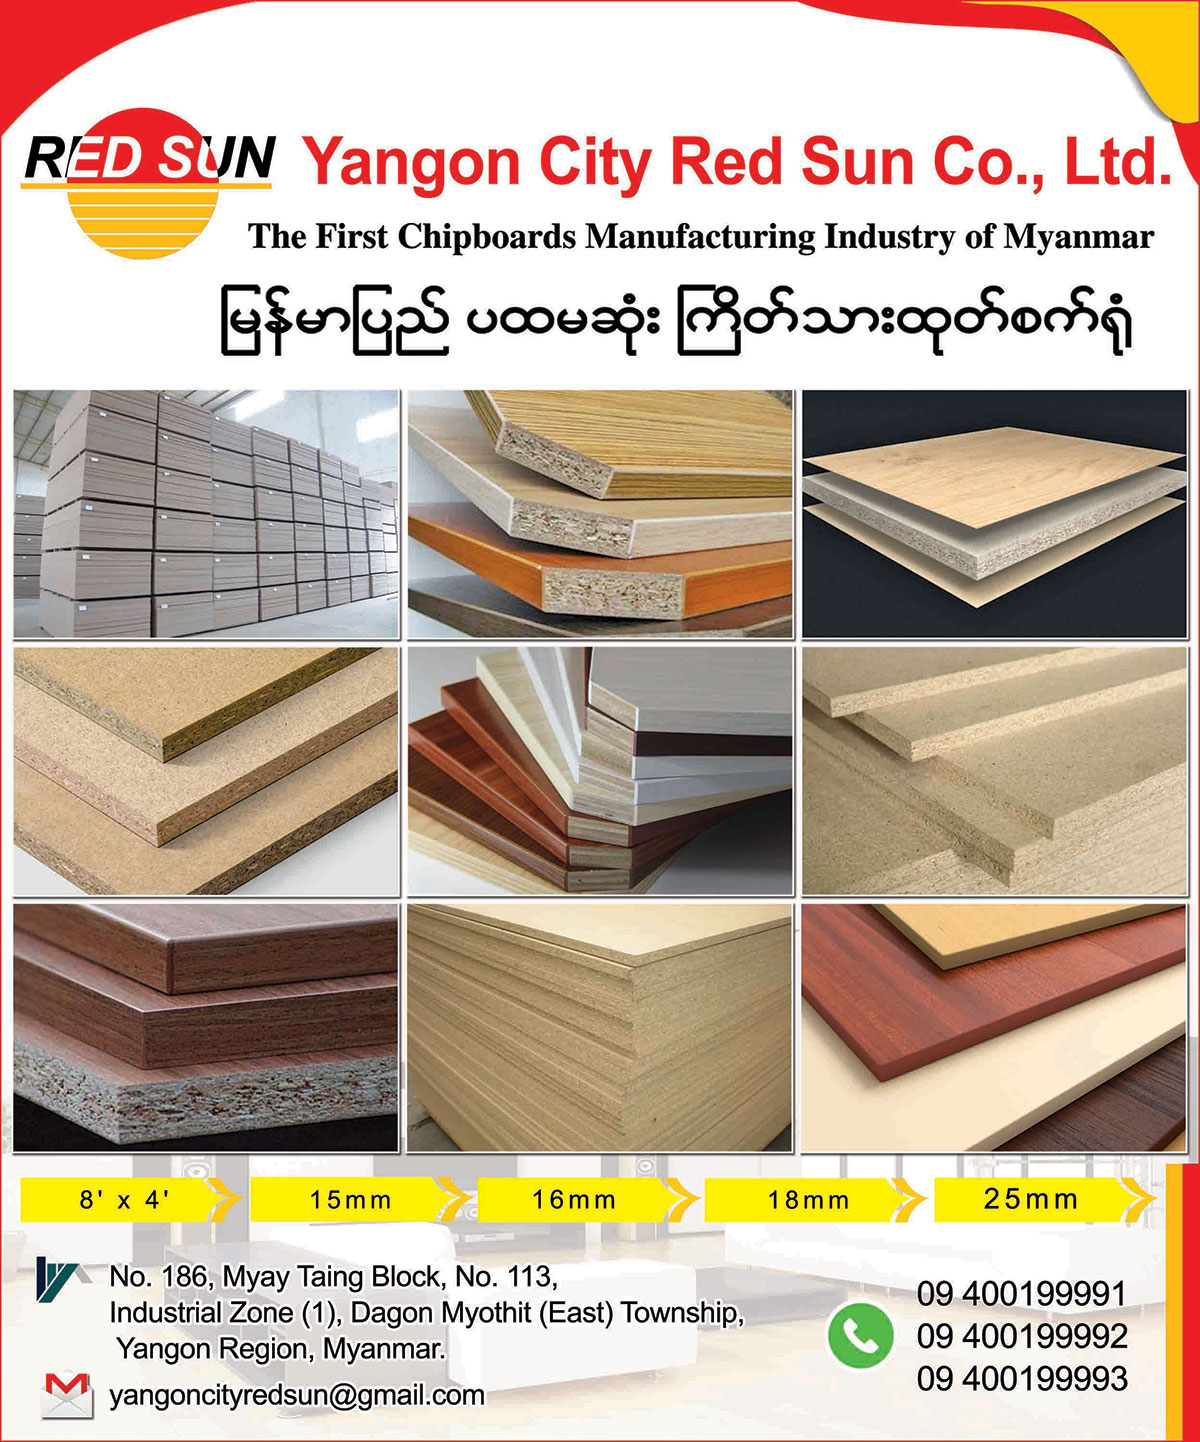 Yangon City Red Sun Co., Ltd.Furniture Marts